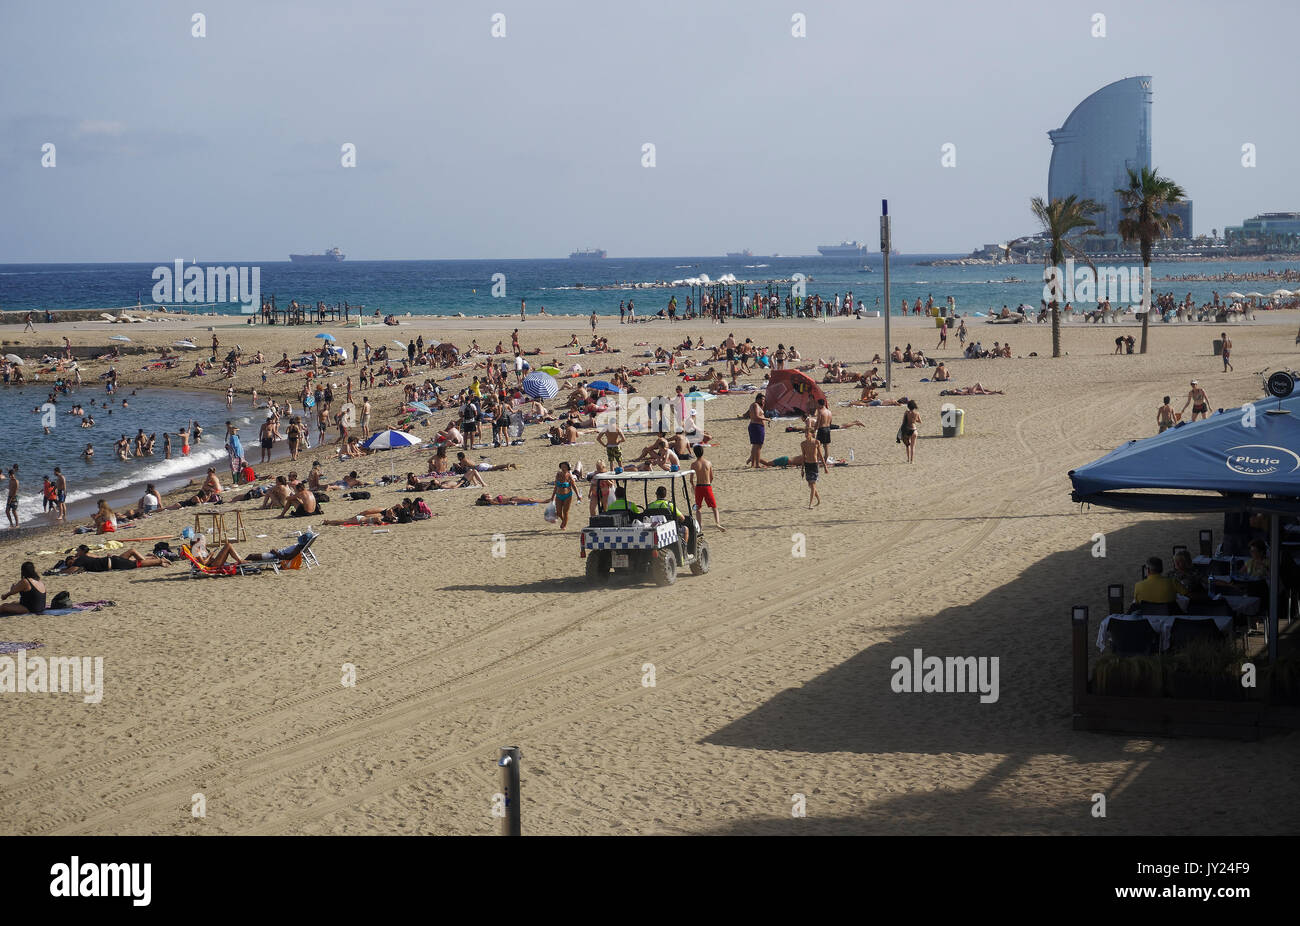 Guardia Urbana police car with policemen patrolling by the sandy crowed beach securing beach safety. - Stock Image